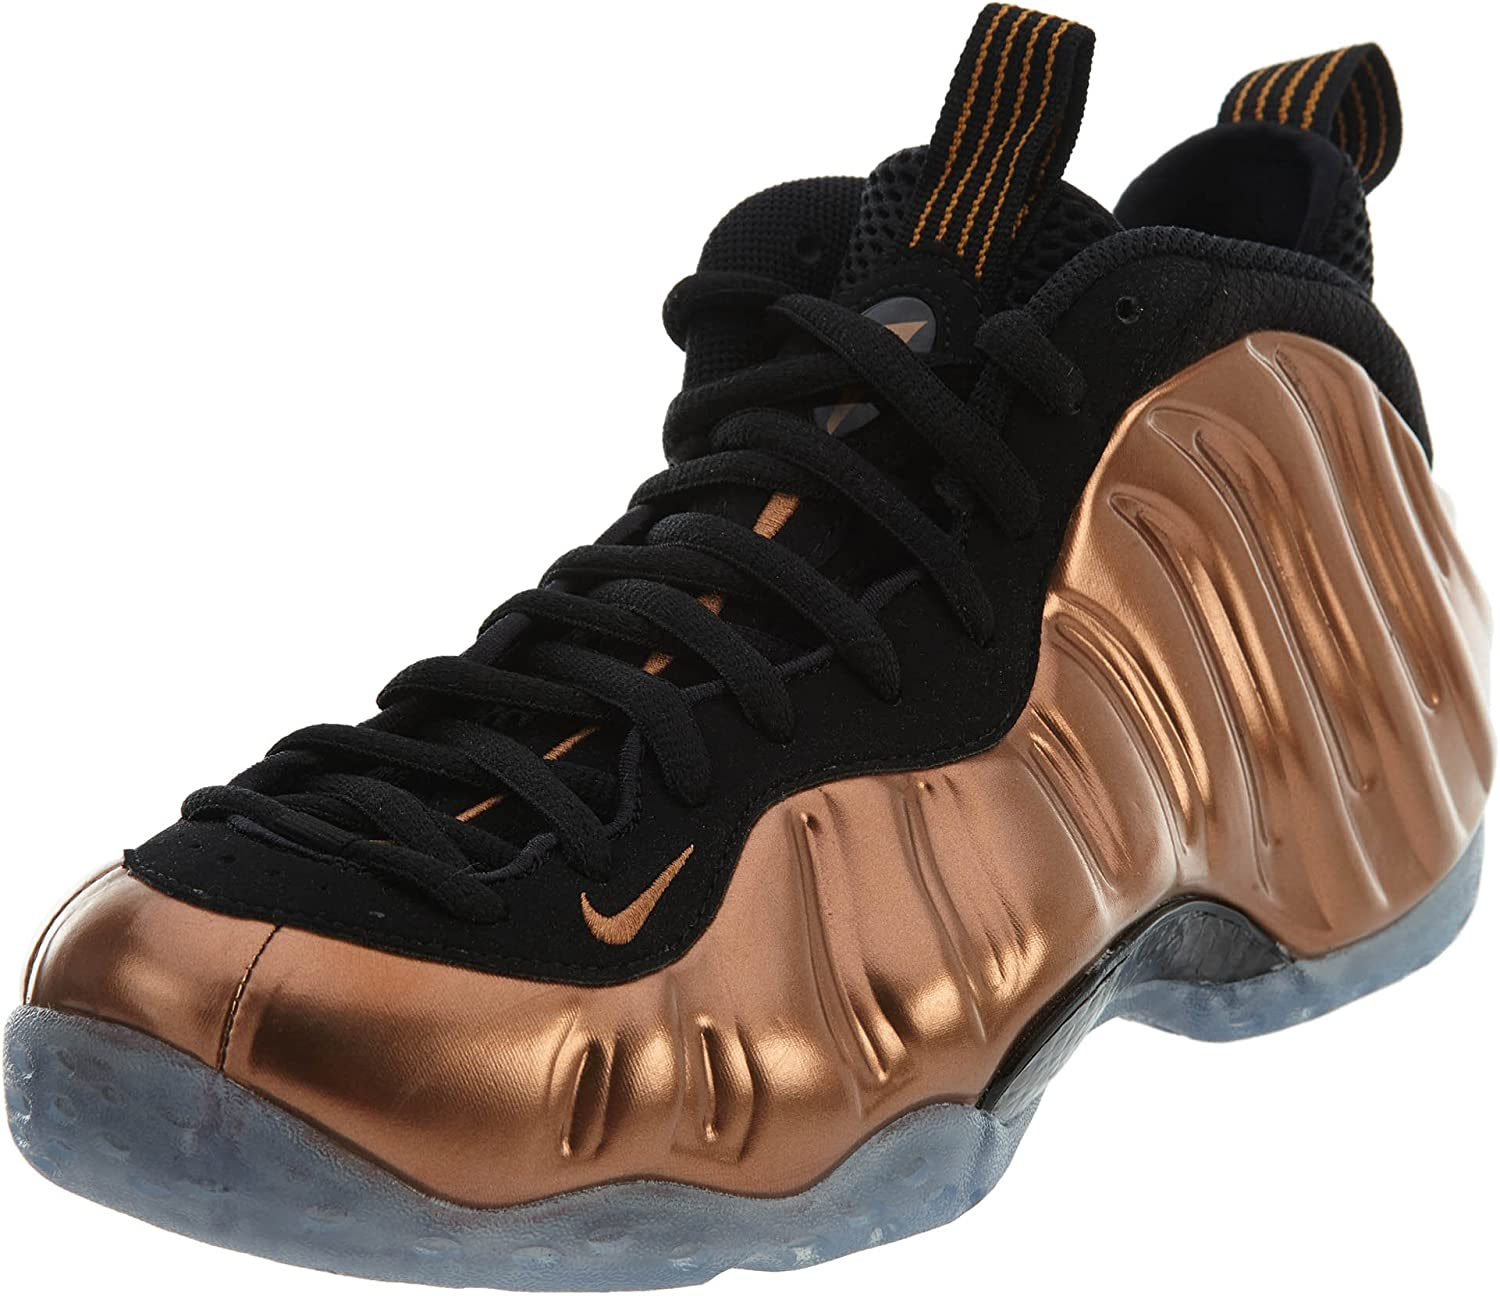 [NIKE - ナイキ] AIR FOAMPOSITE ONE 'COPPER' - 314996-007 - SIZE 11 (メンズ)